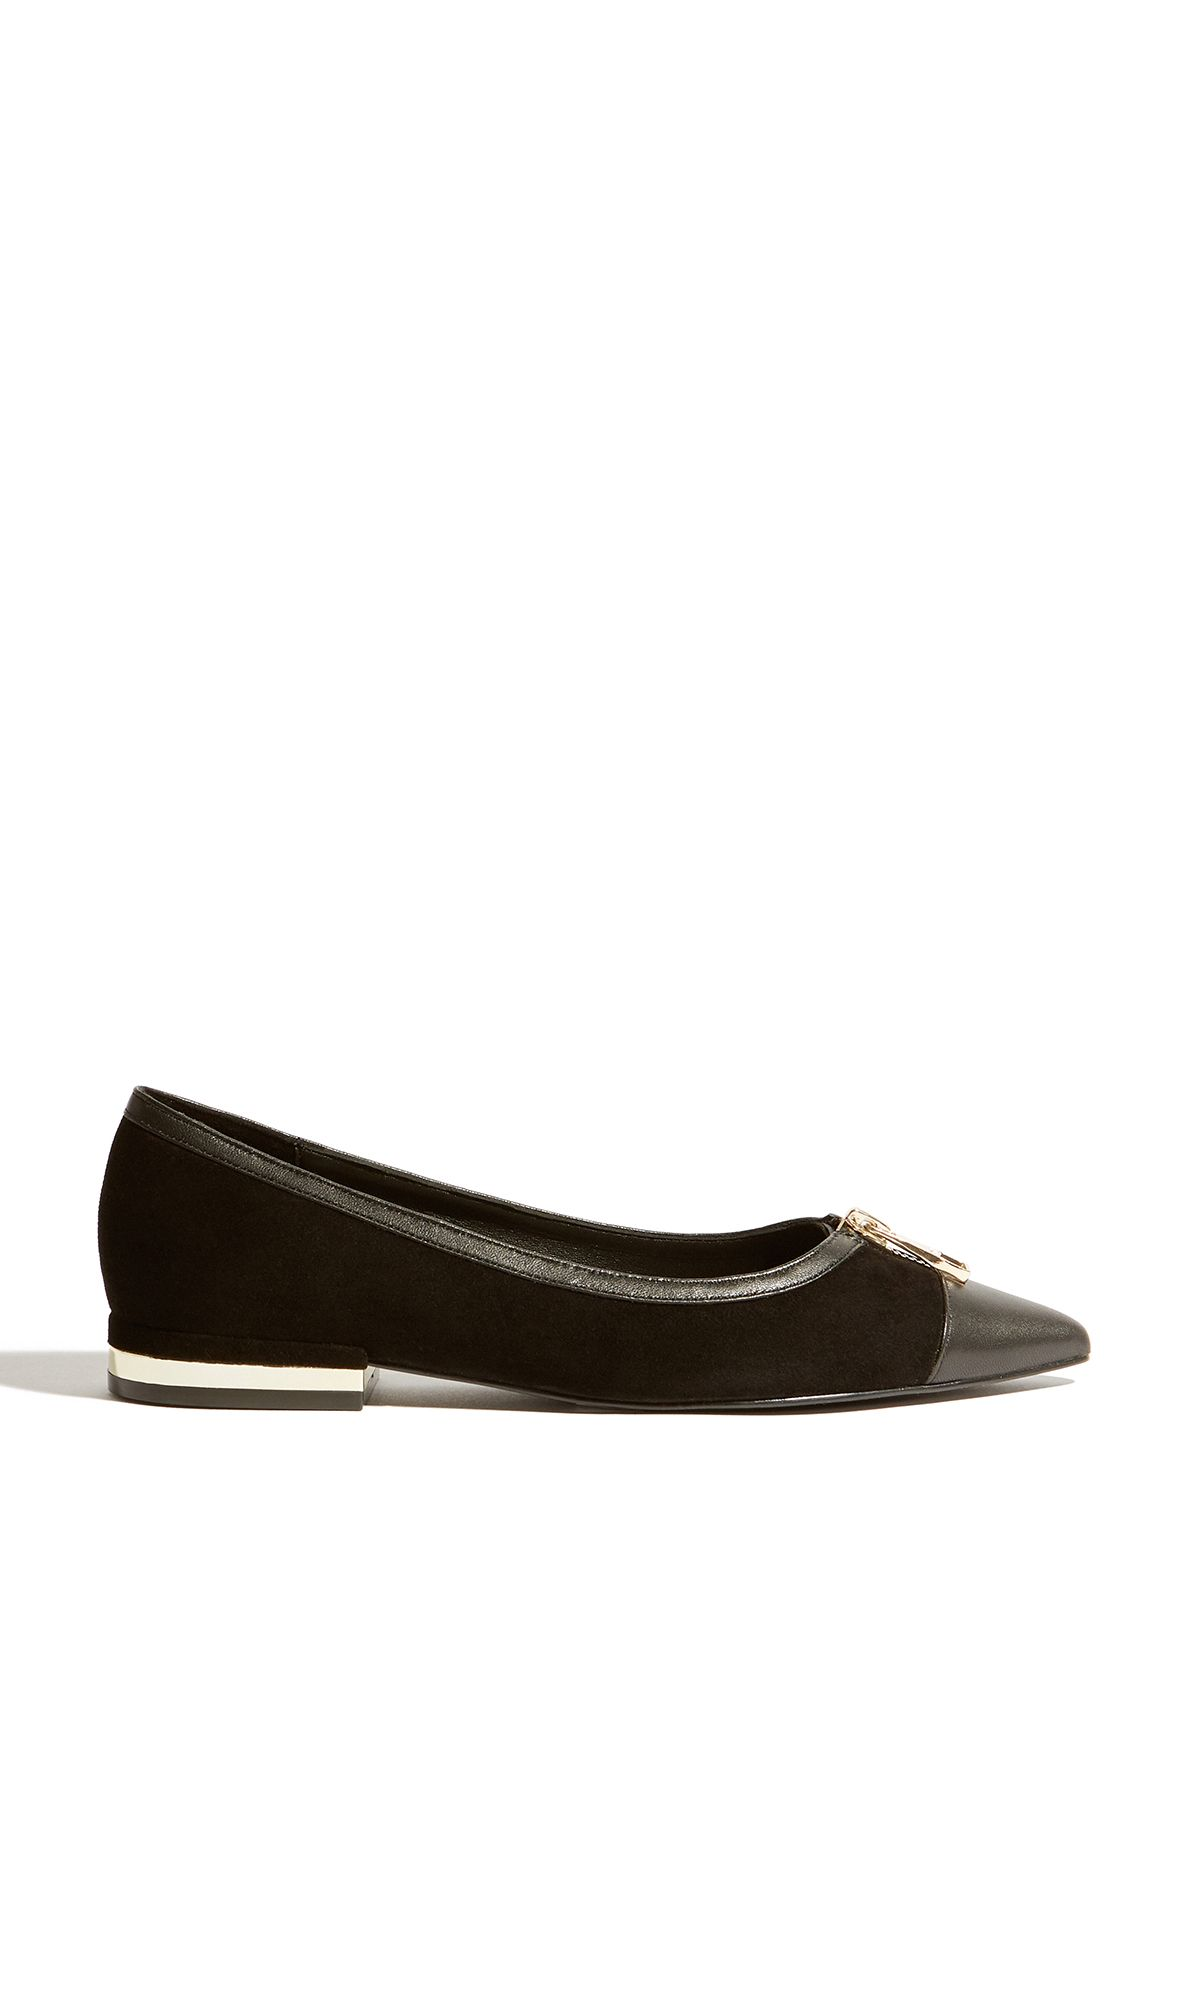 Click to view product details and reviews for Karen Millen Ballerina Pumps Black.